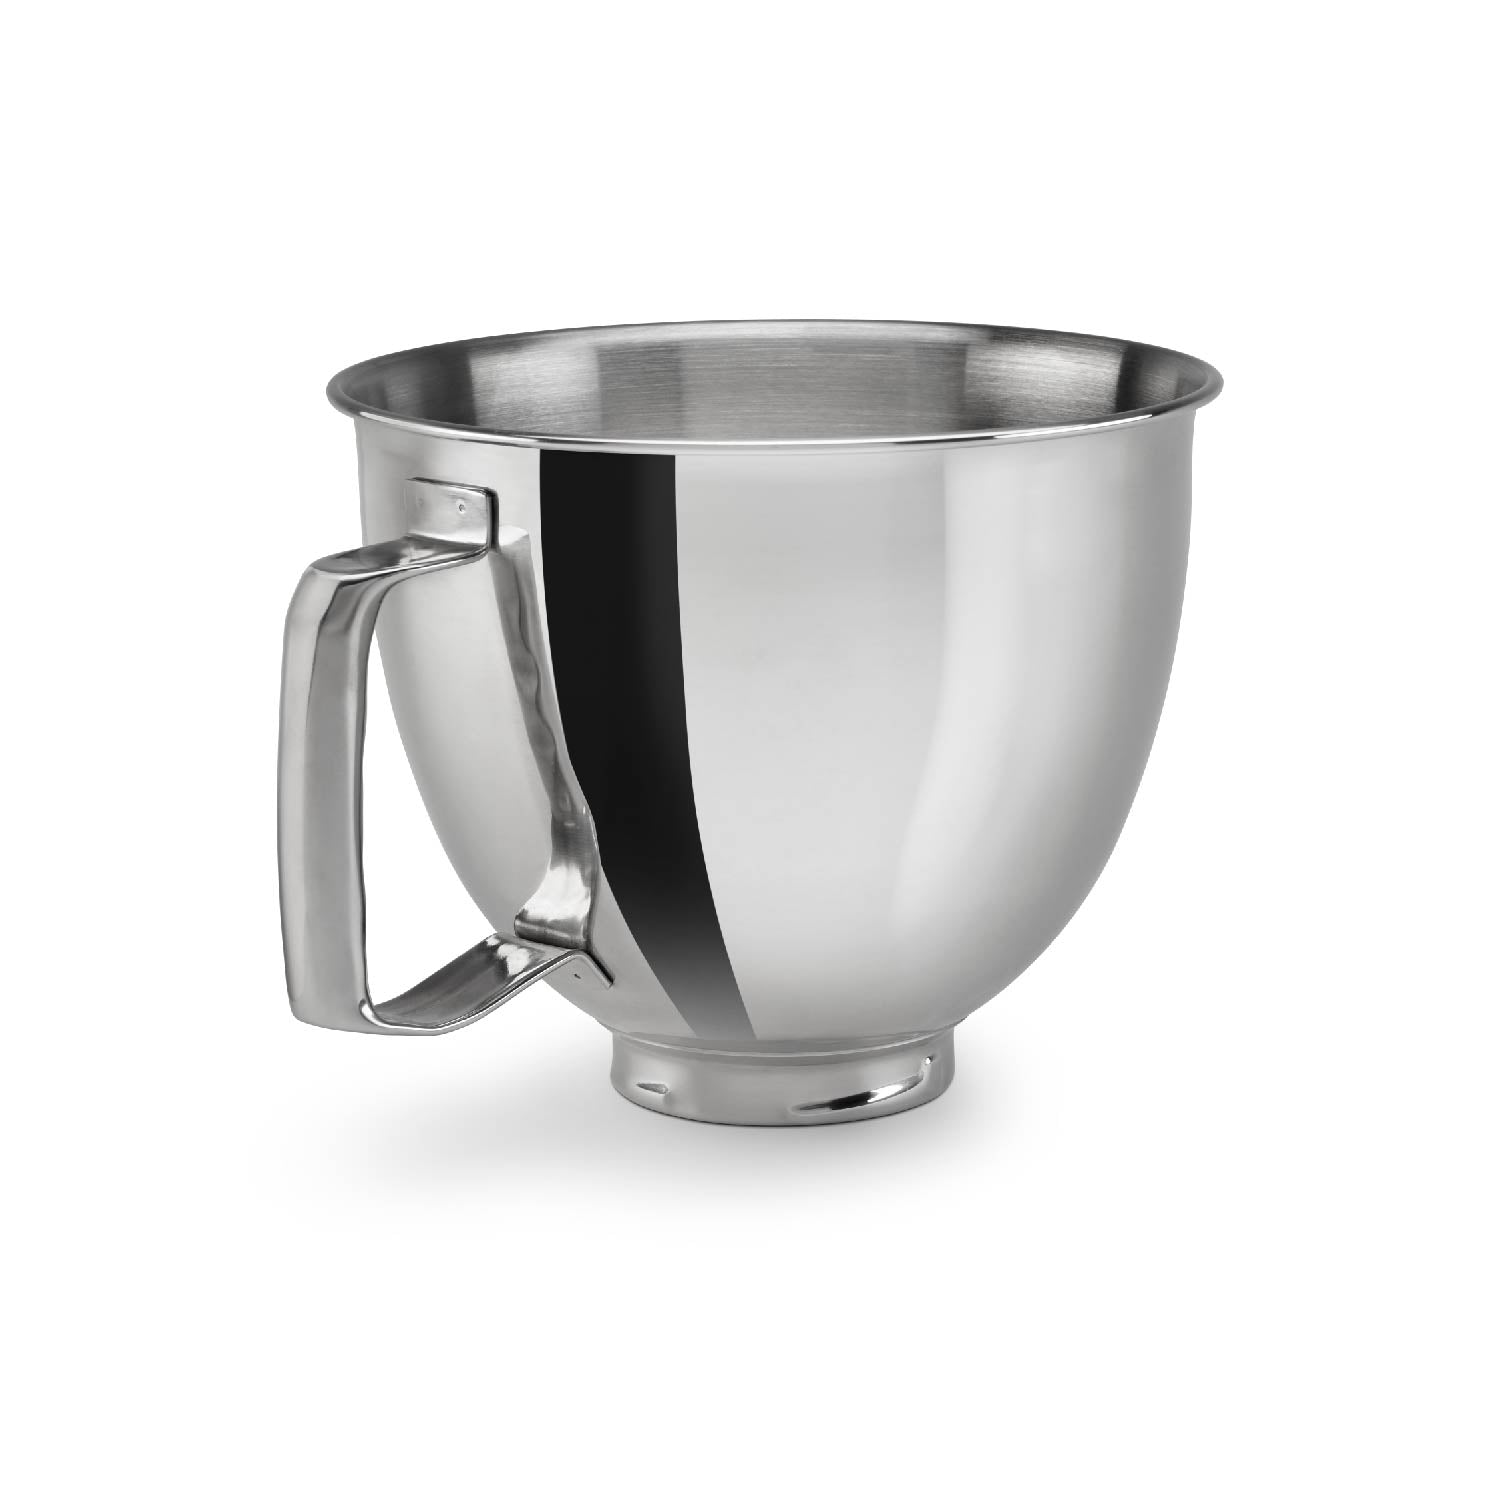 3.3L Stainless Steel Bowl with handle